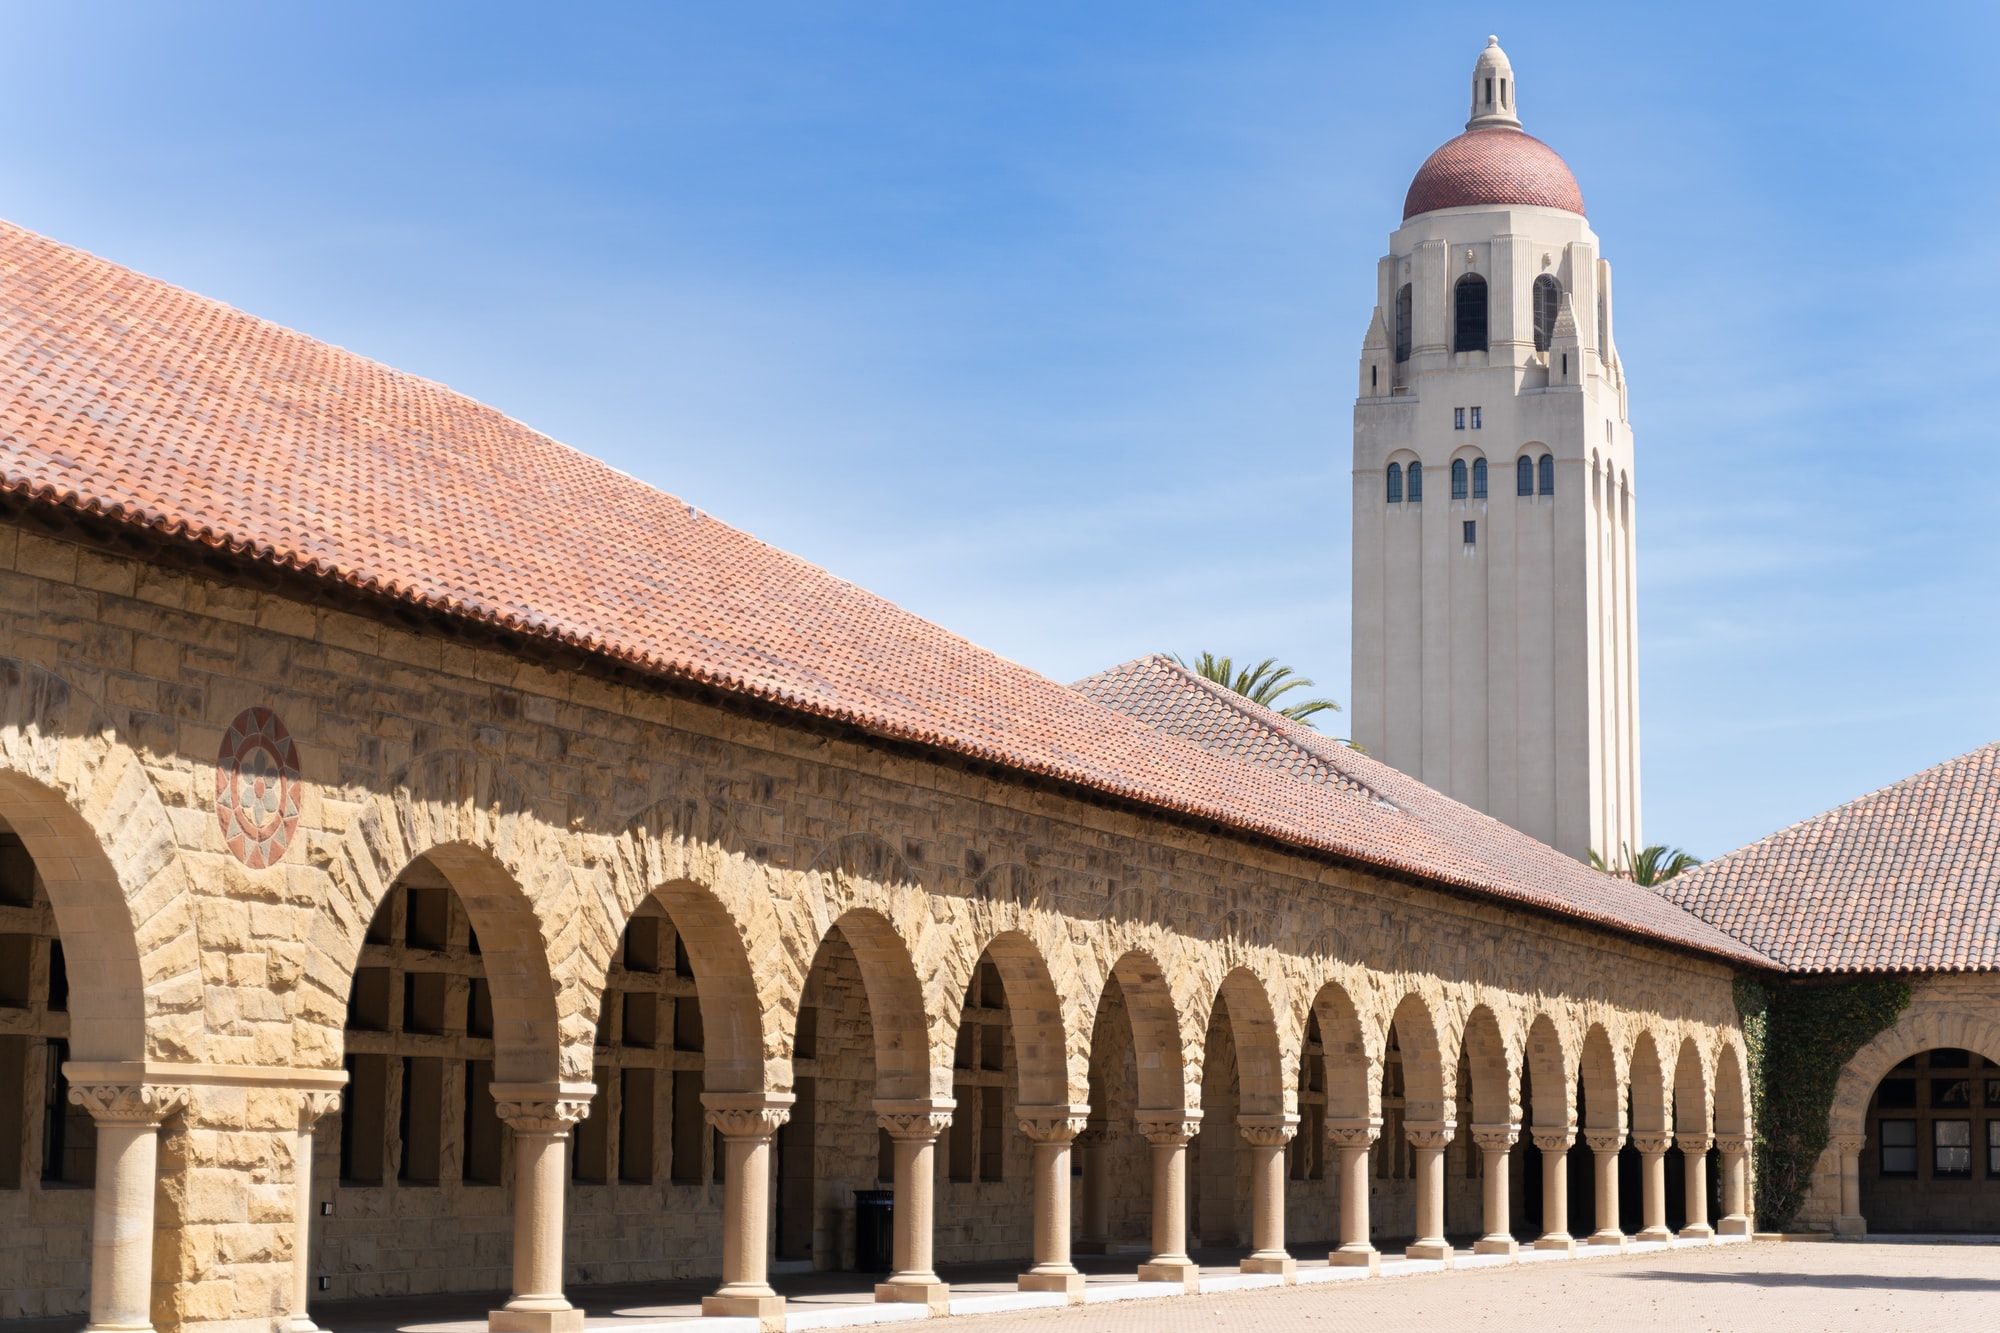 America's richest universities rely on taxpayer-backed graduate loans